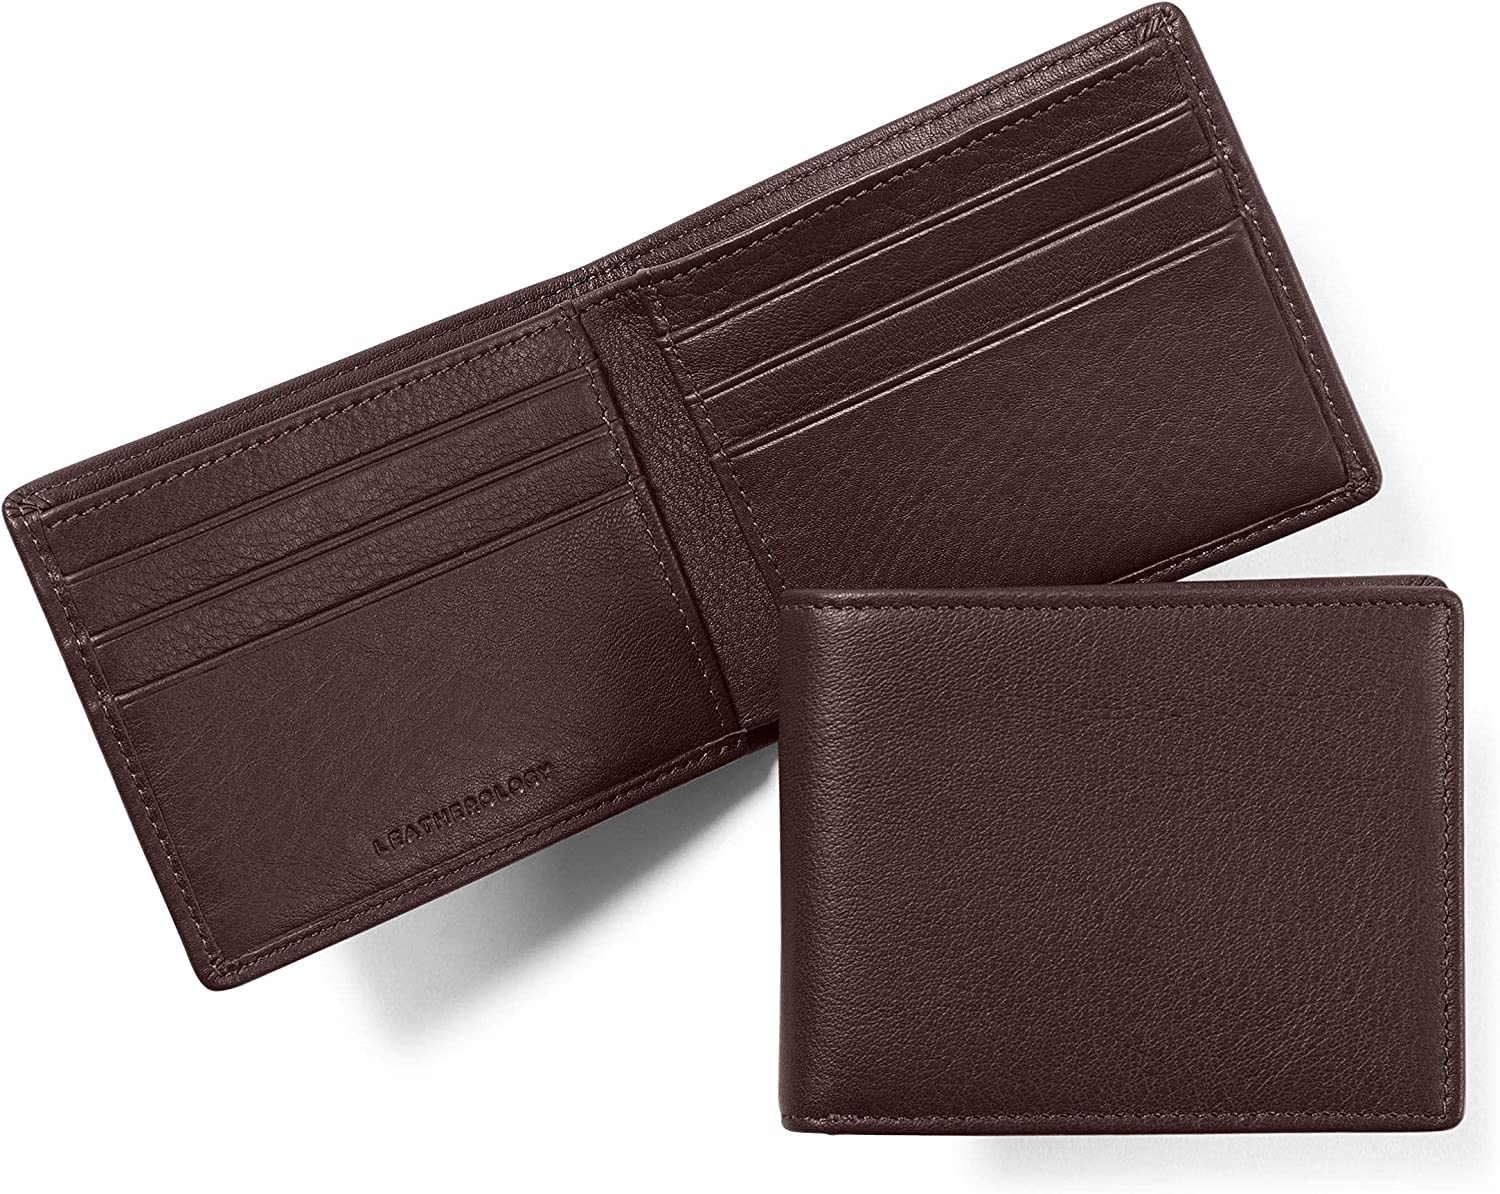 Leatherology Brown Men's Thin Bifold Wallet - RFID Available